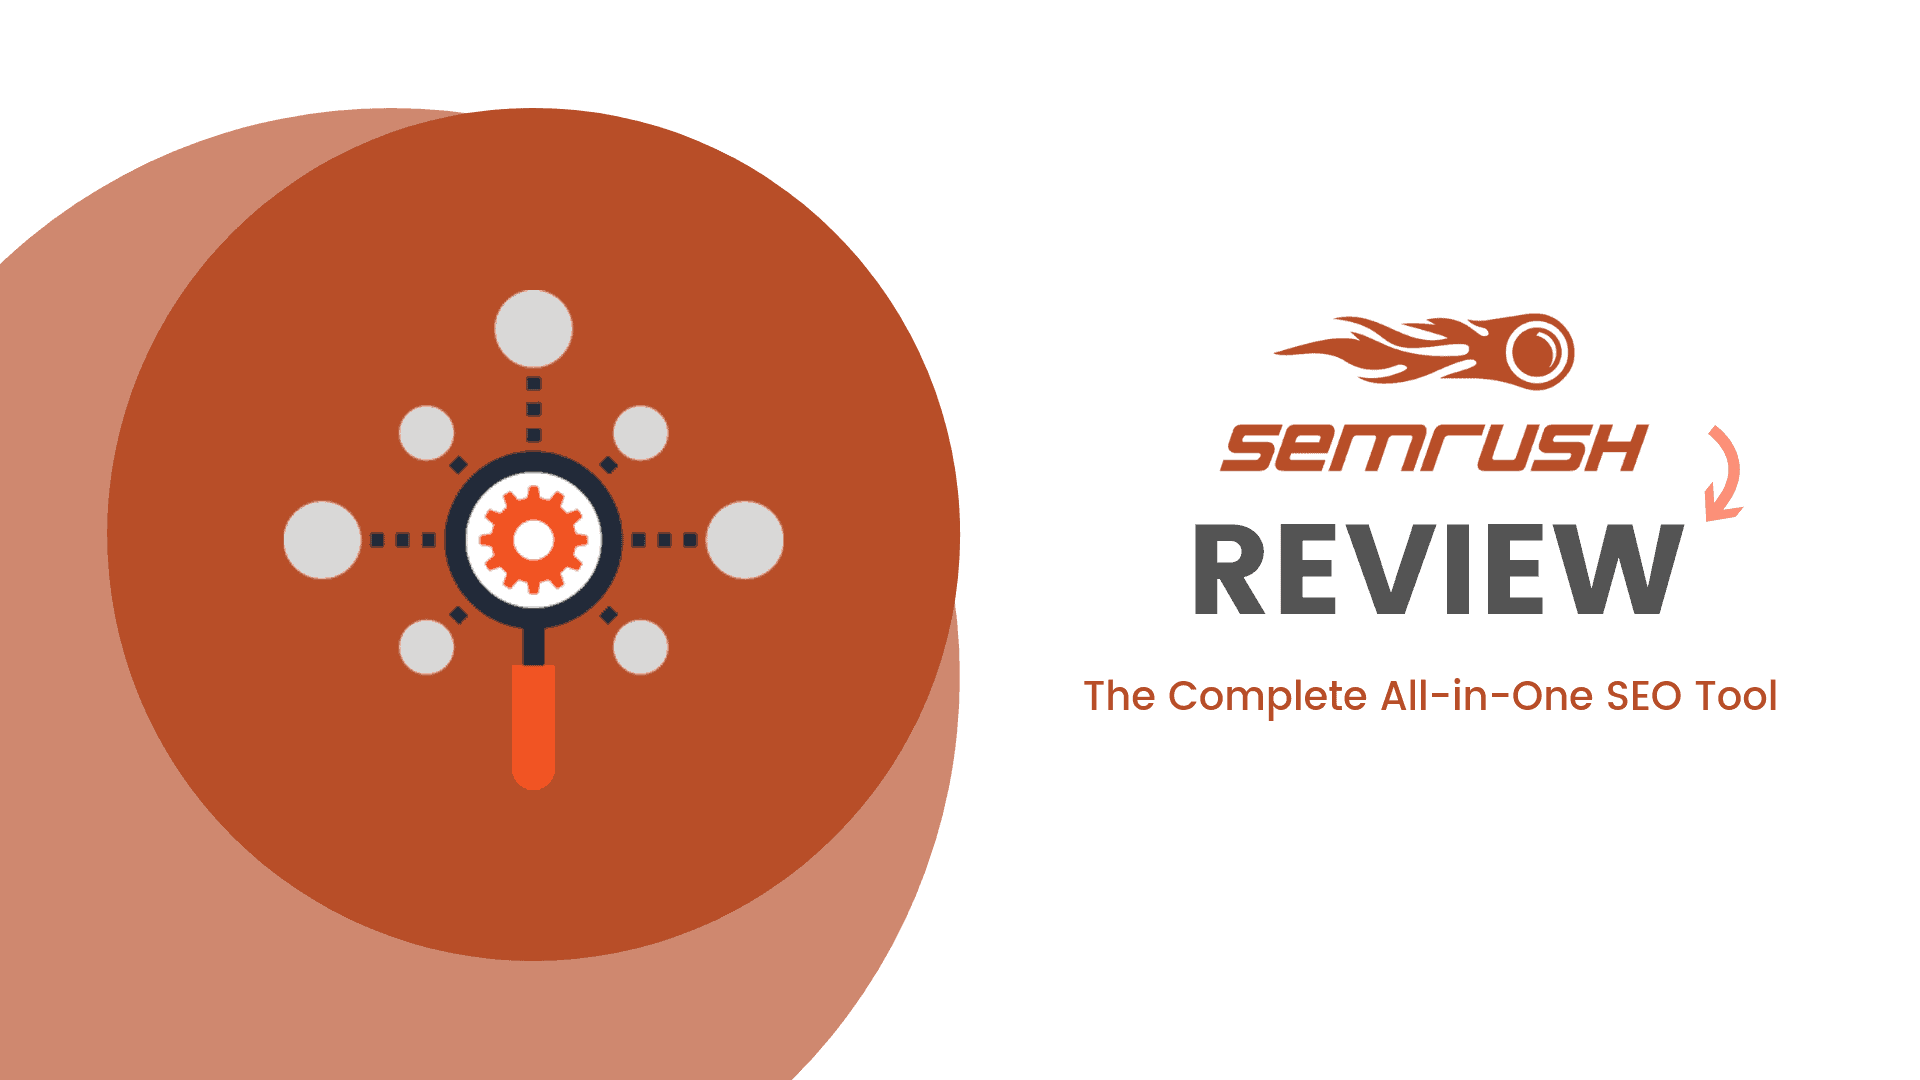 Seo Software Semrush Coupons Current April 2020